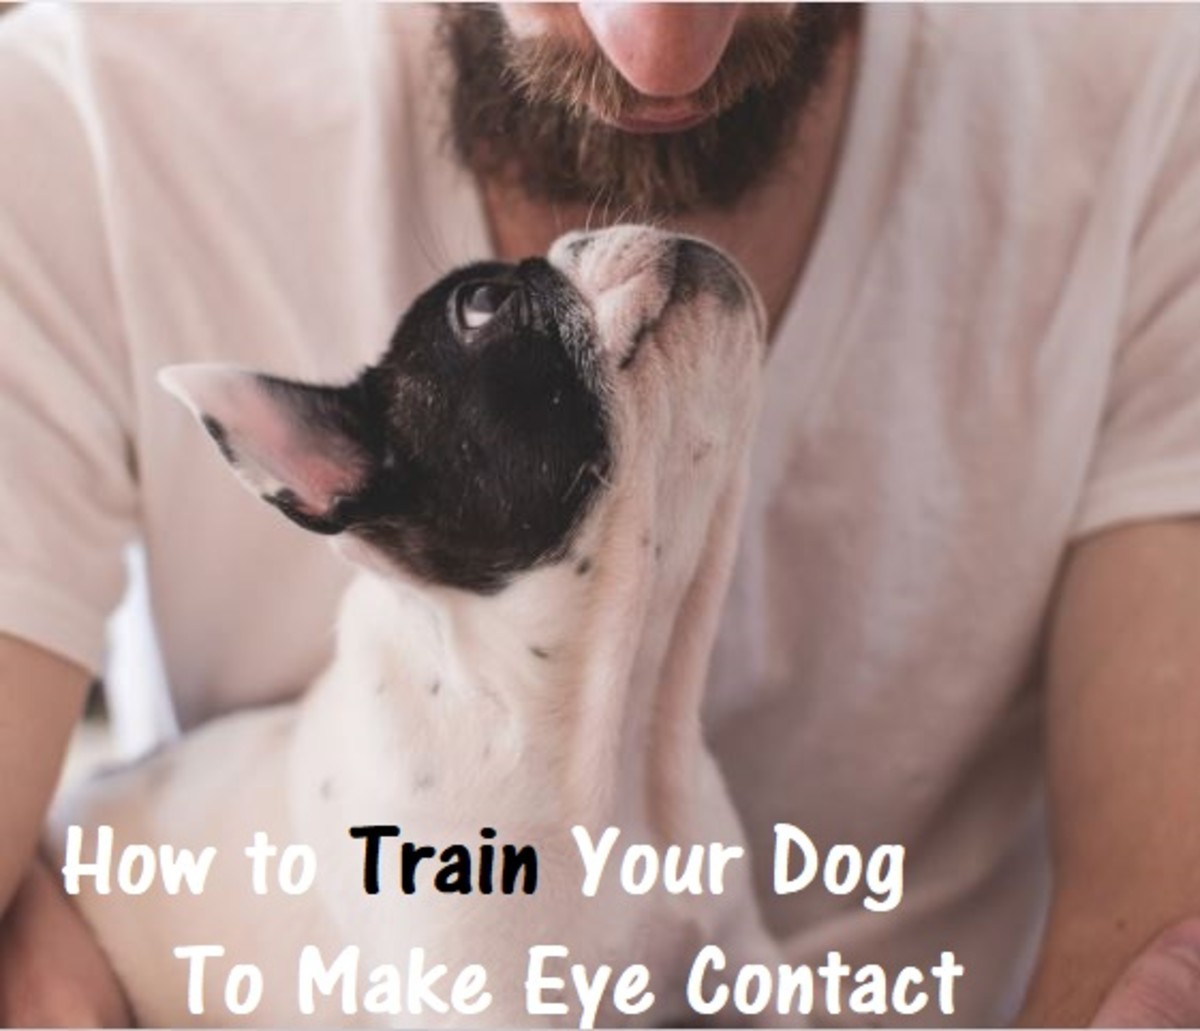 How to Teach a Dog to Make Eye Contact